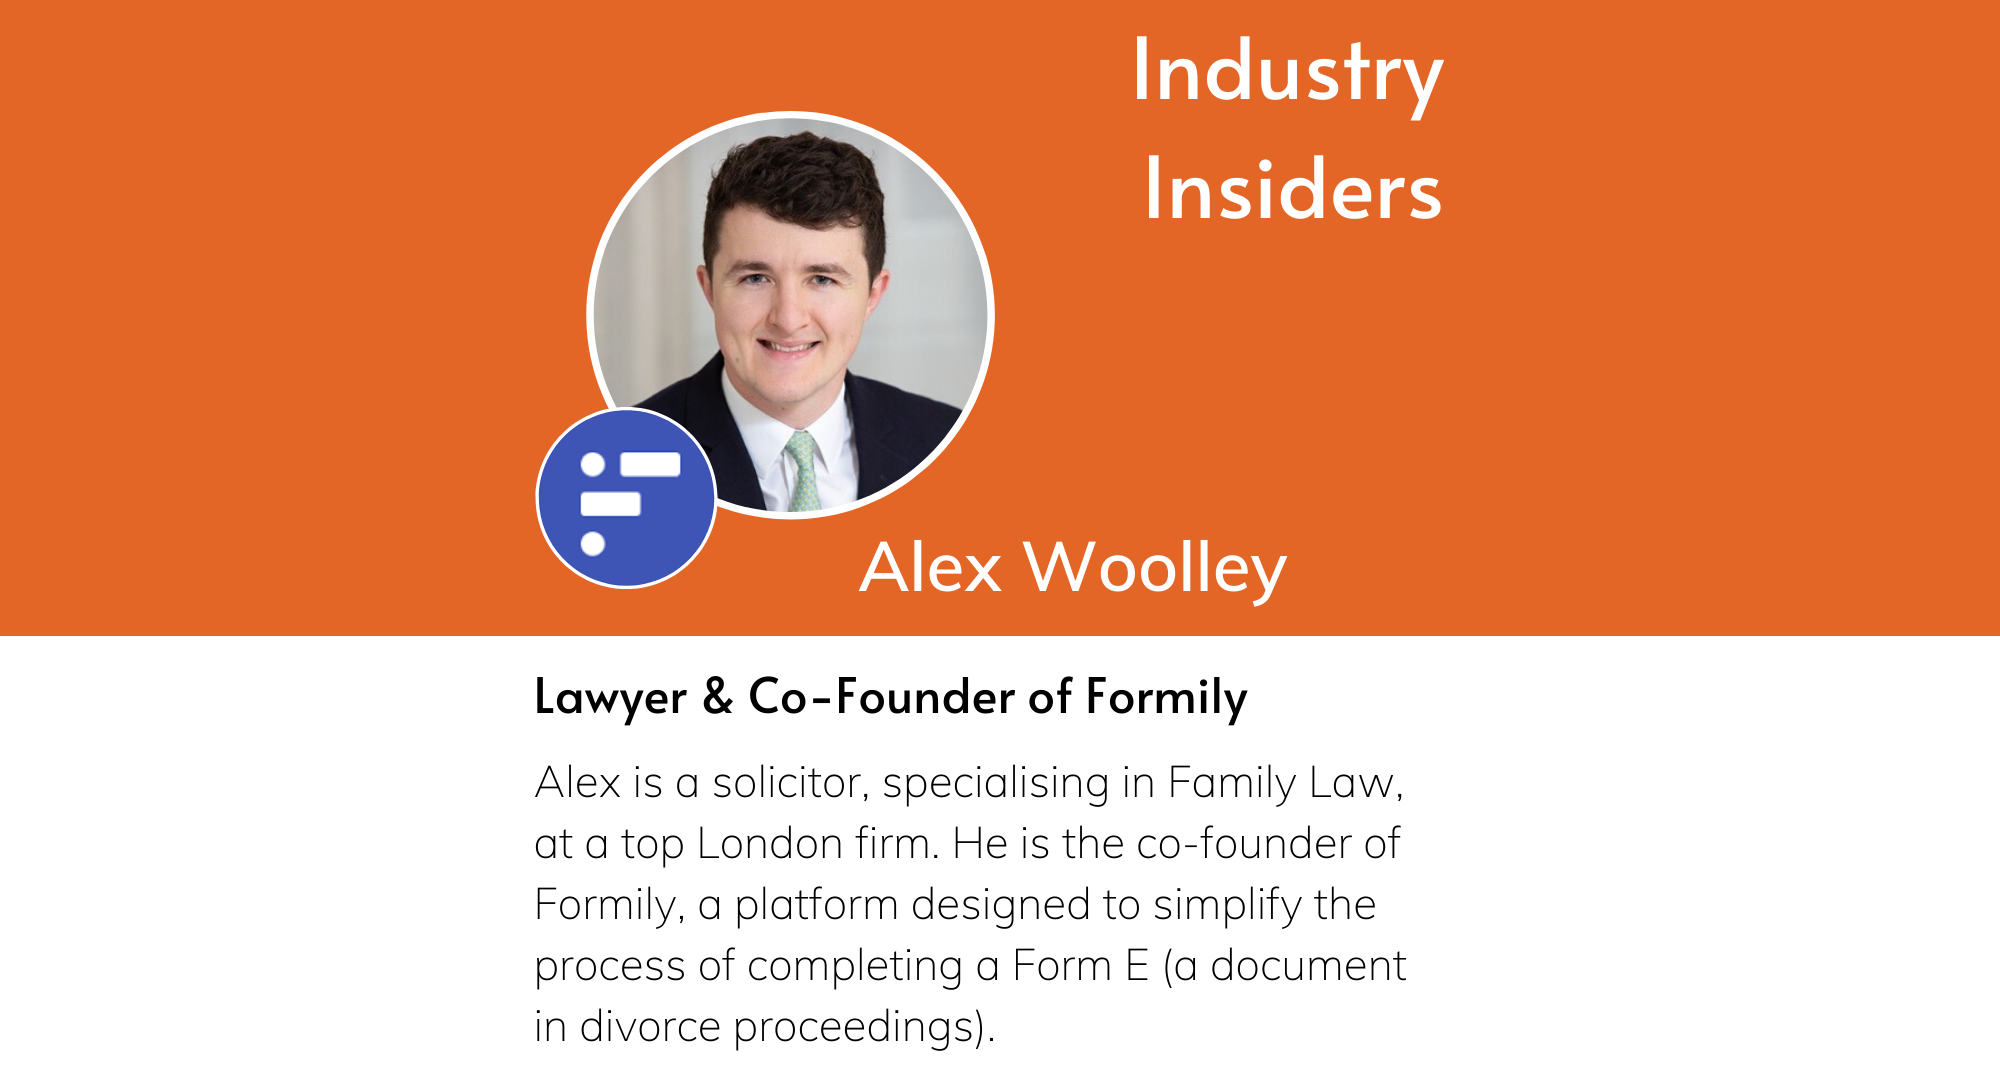 Industry Insiders - Family Law Tech Innovation